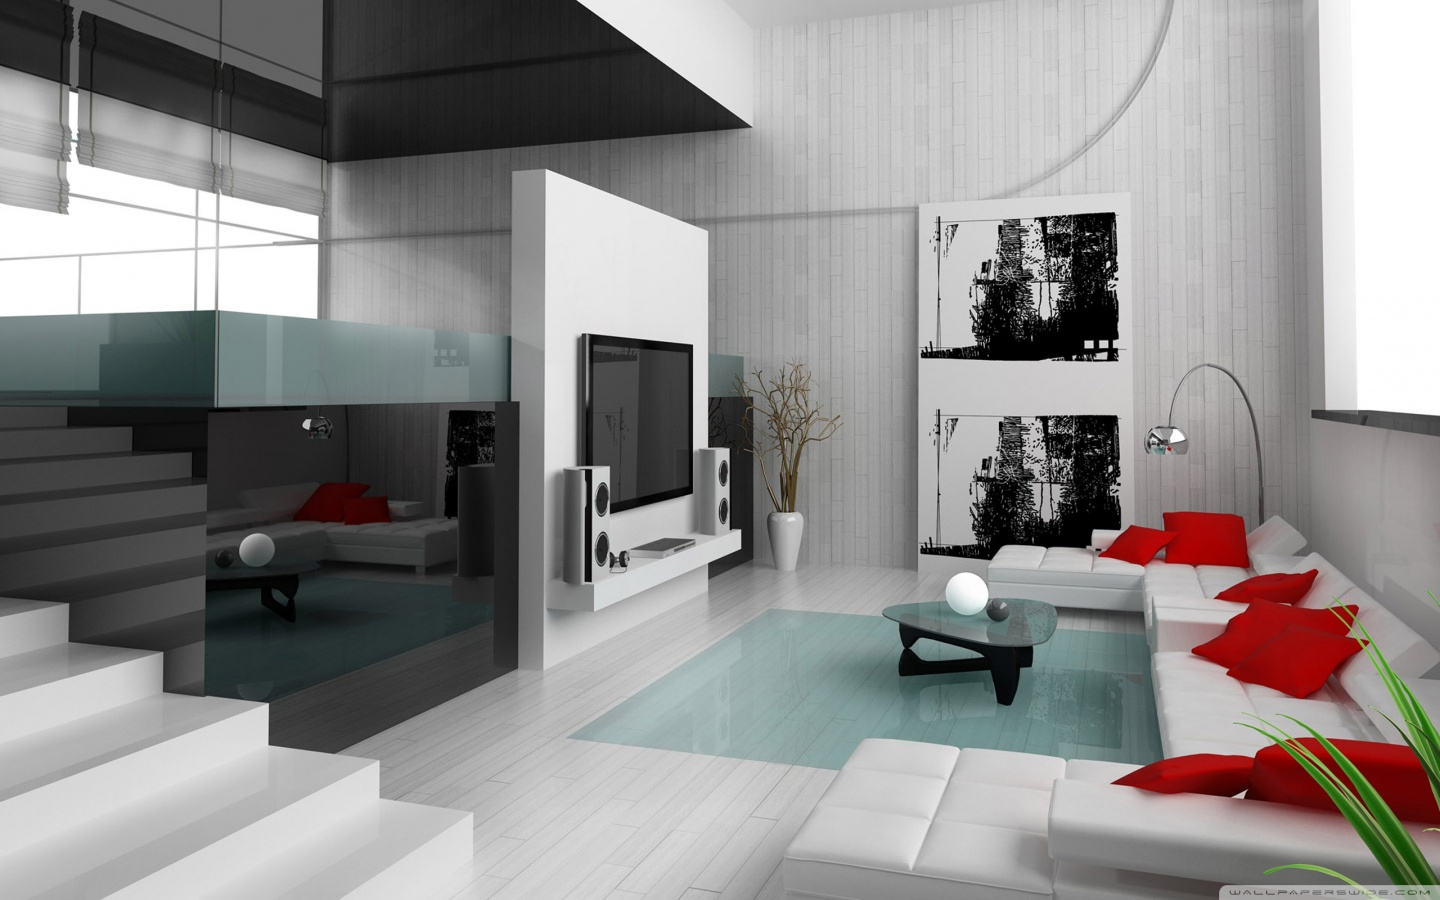 Minimalist interior design imagination art architecture for Interior design and decoration